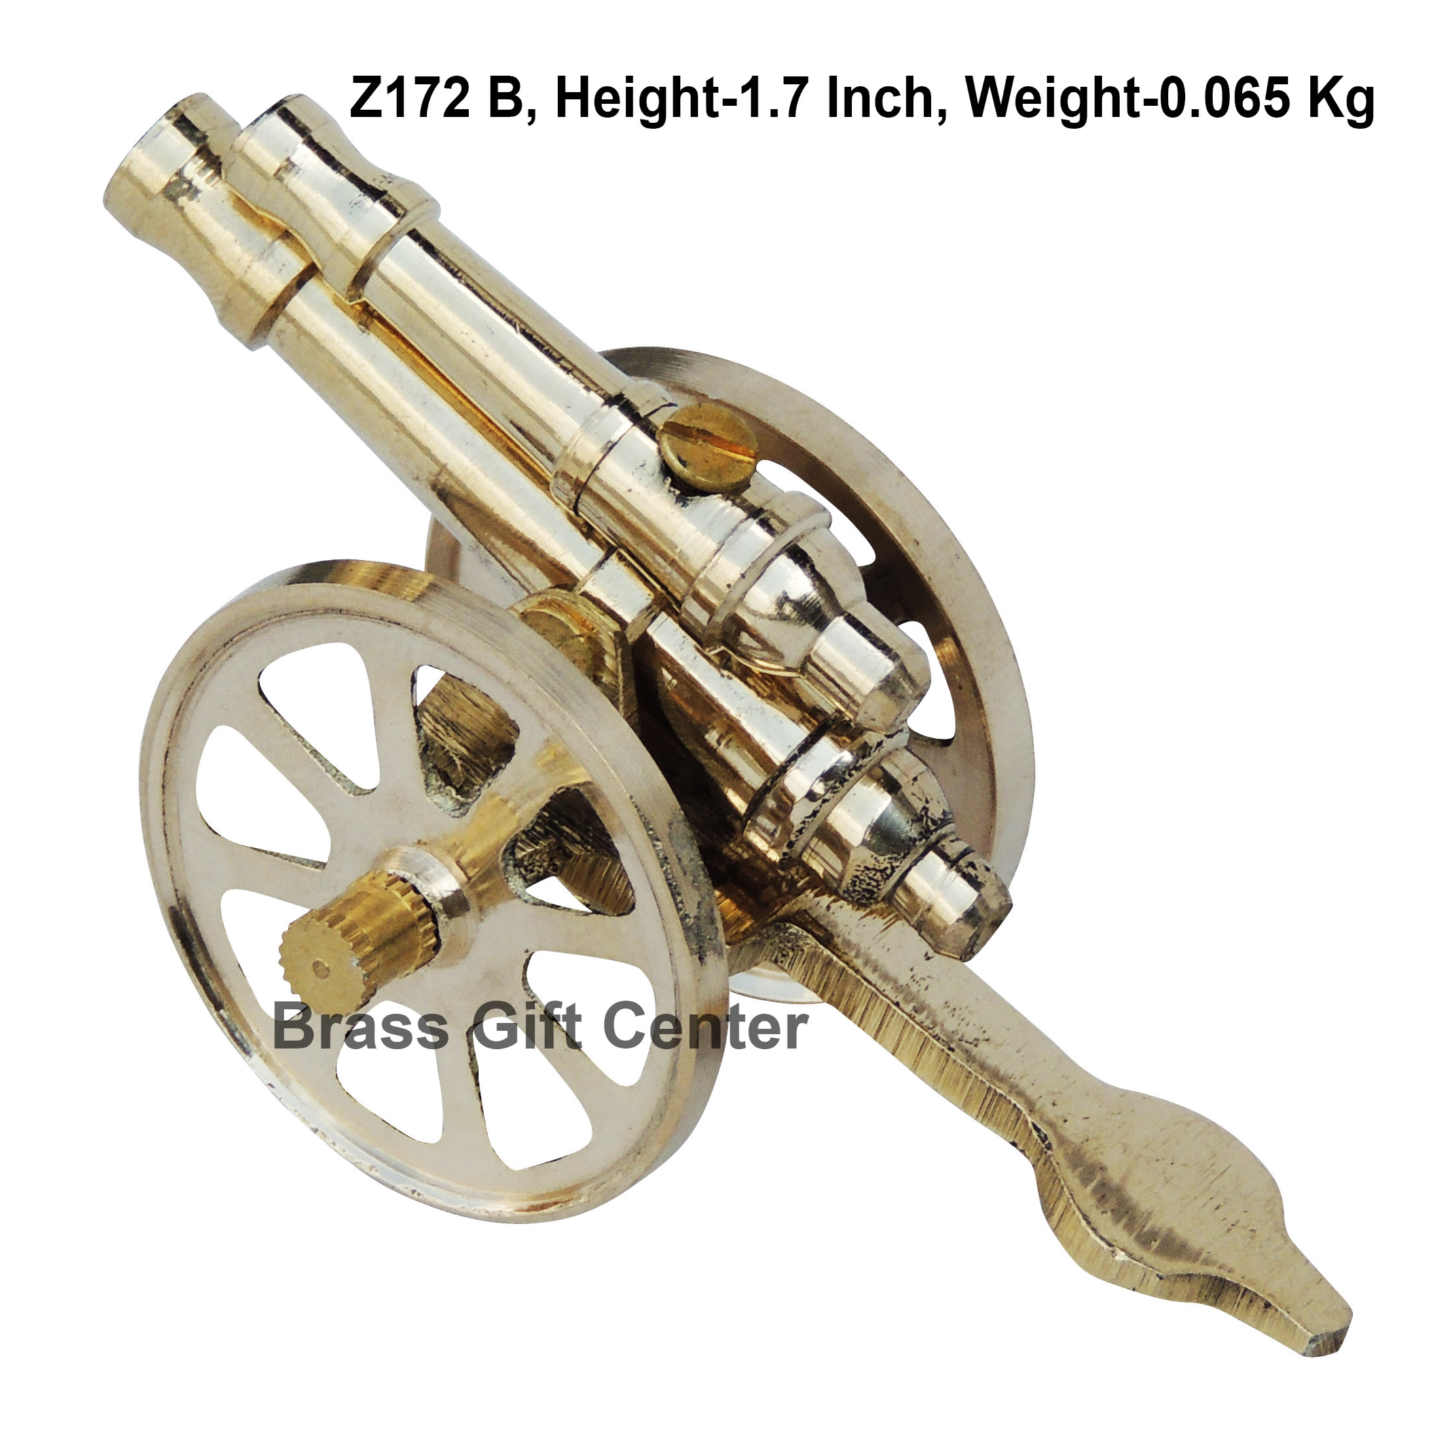 Brass Small Toop Cannon No 4 - 3.5*1.7*1.7 Inch  (Z172 B)